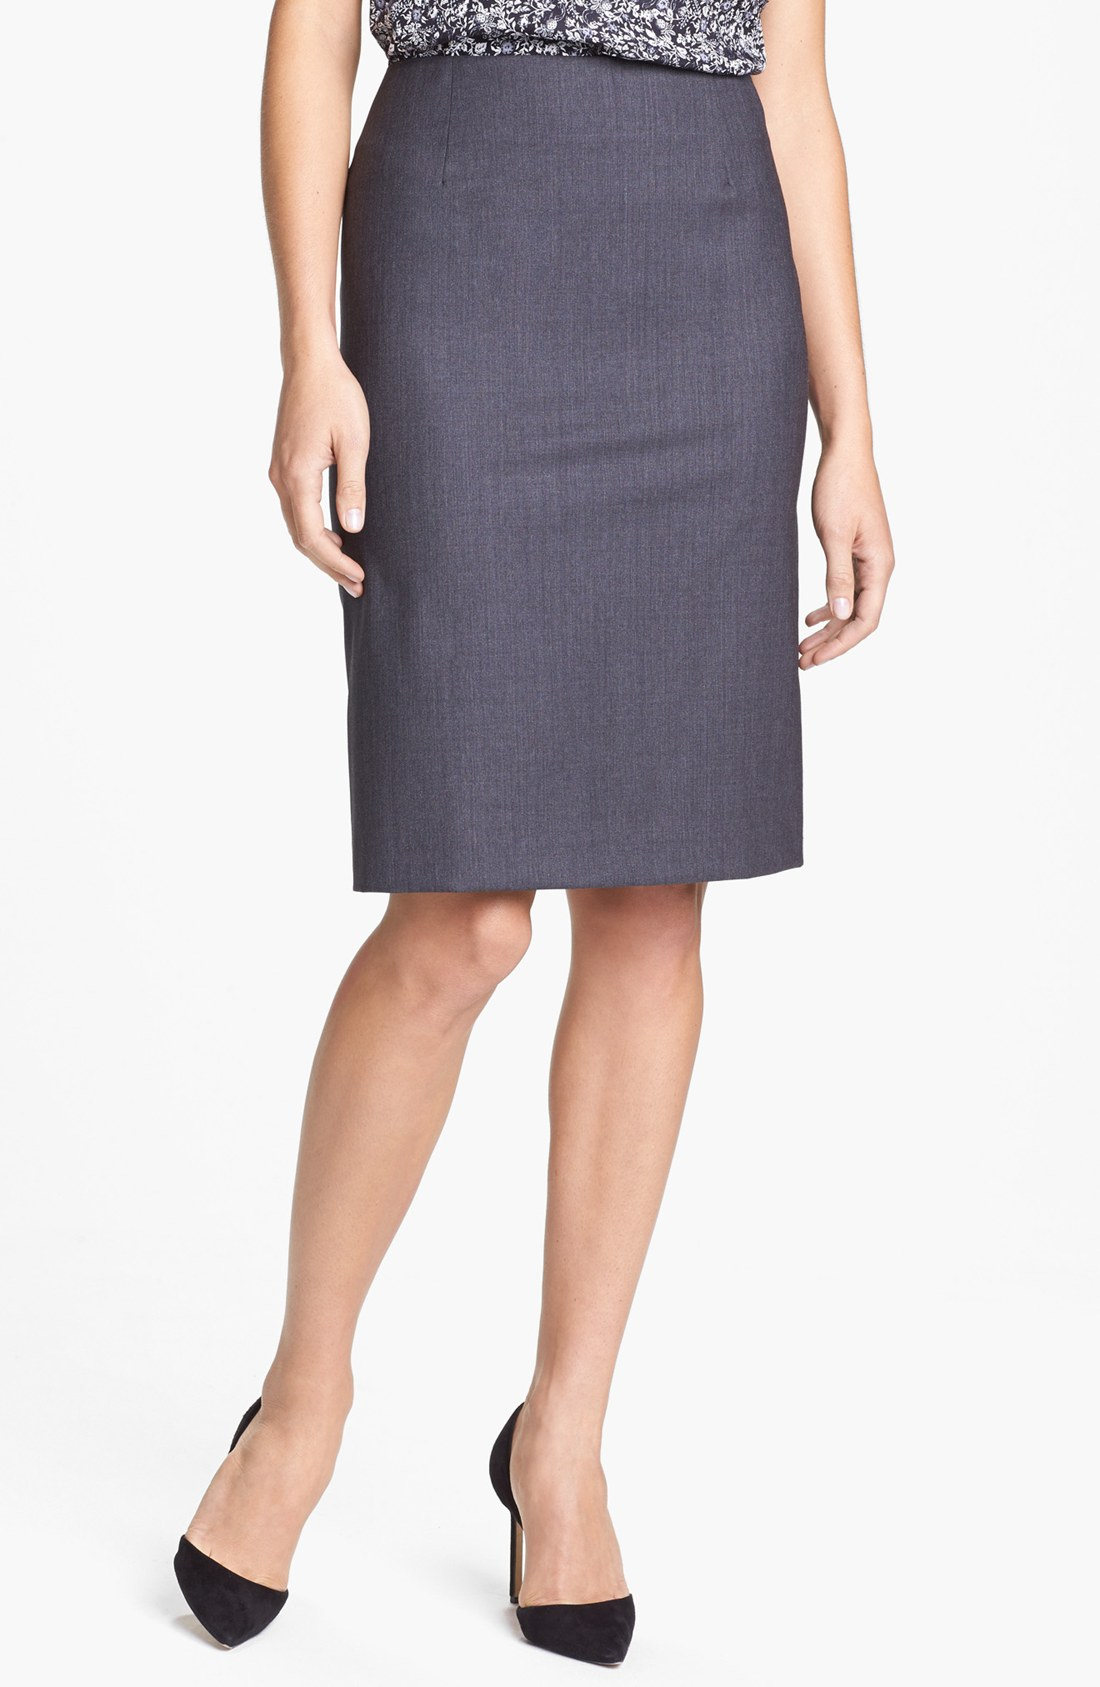 theory golda 2 pencil skirt in gray charcoal lyst